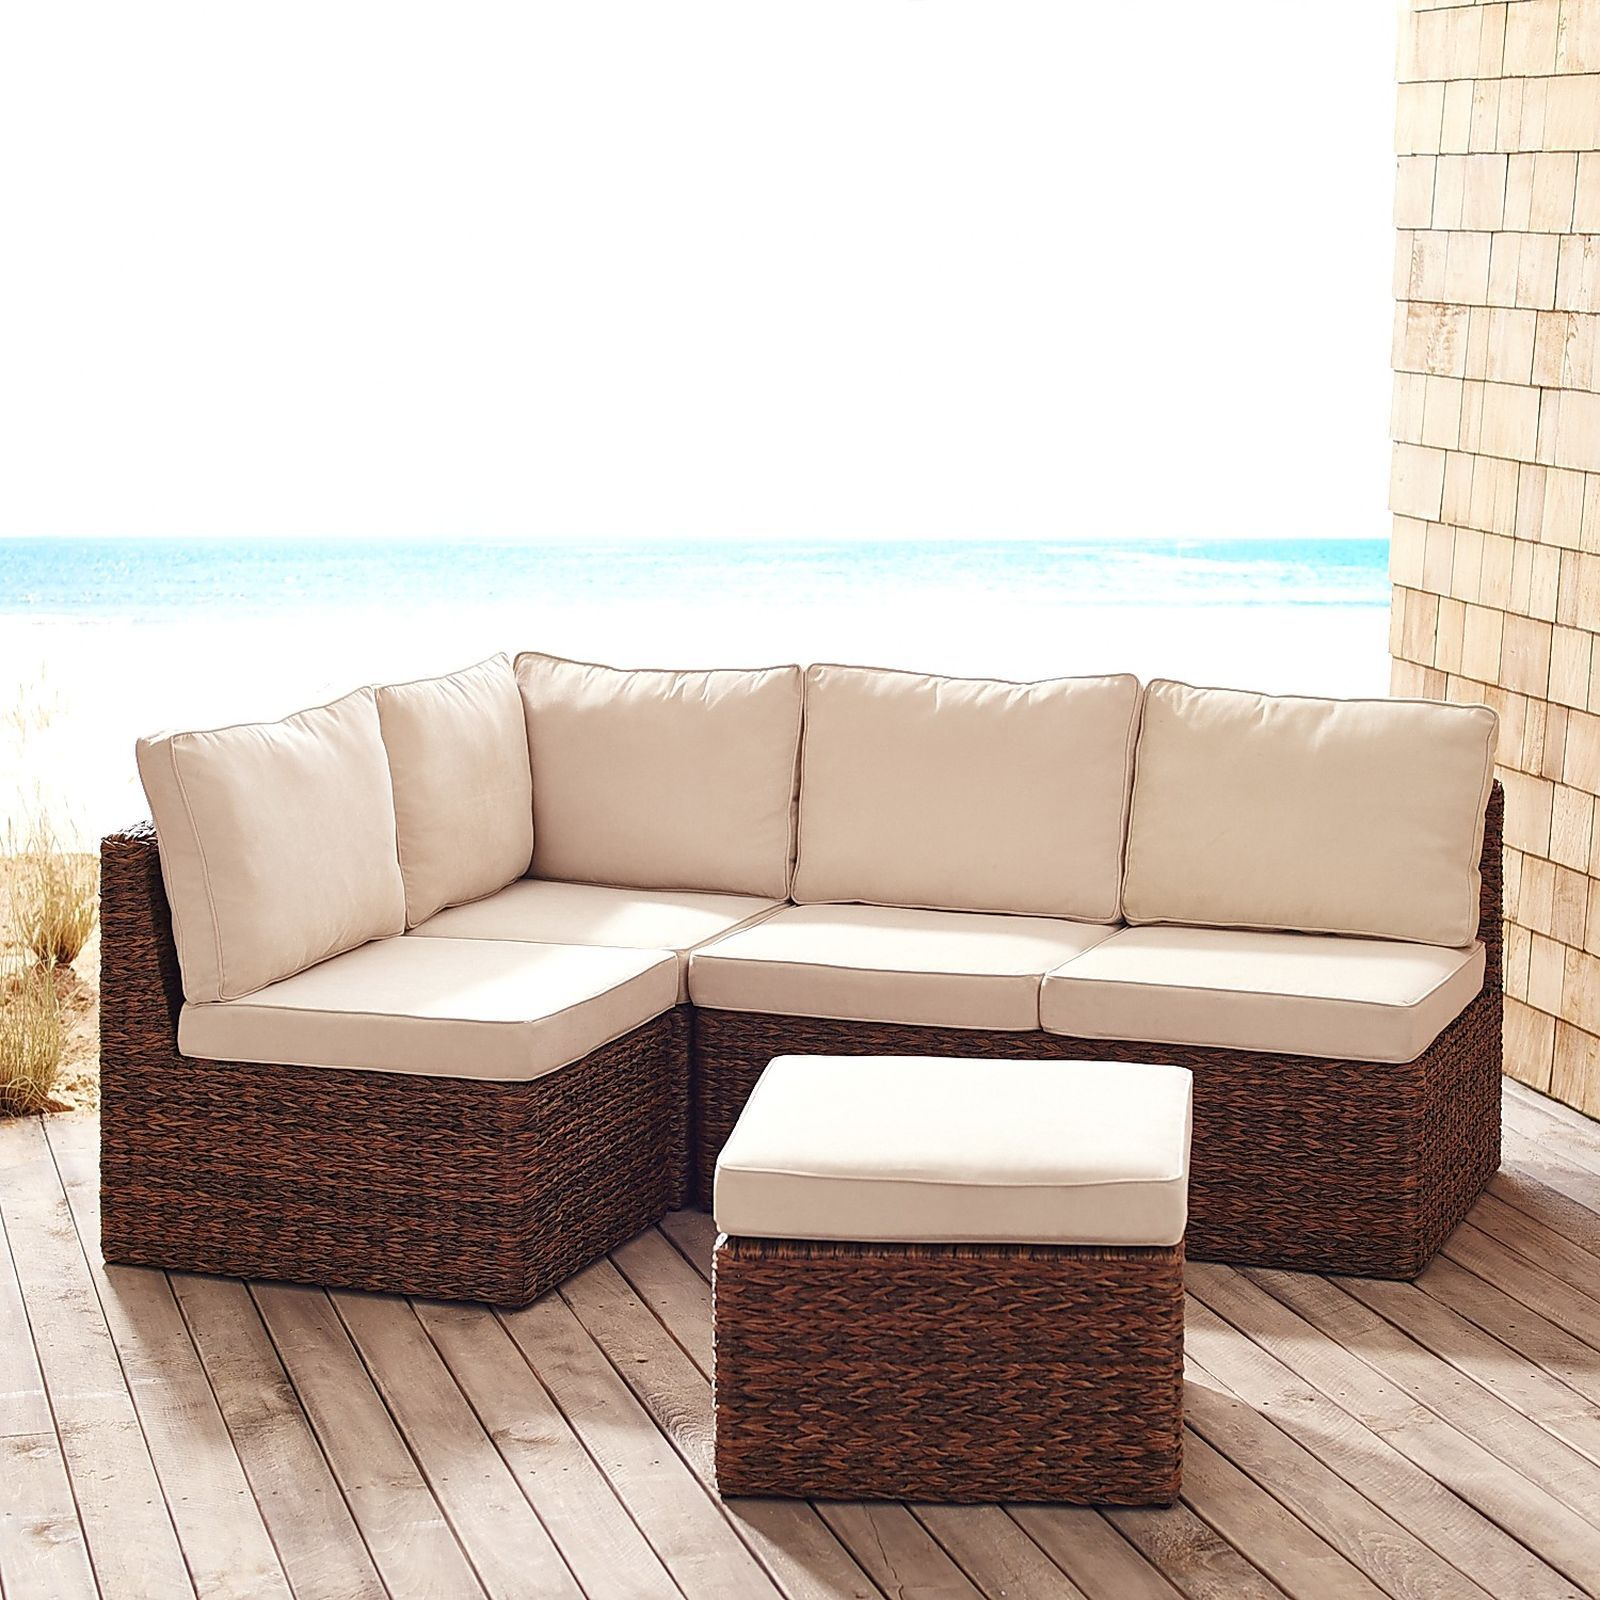 Design Your Own Exterior: Create Your Own Private Retreat On The Patio With Our